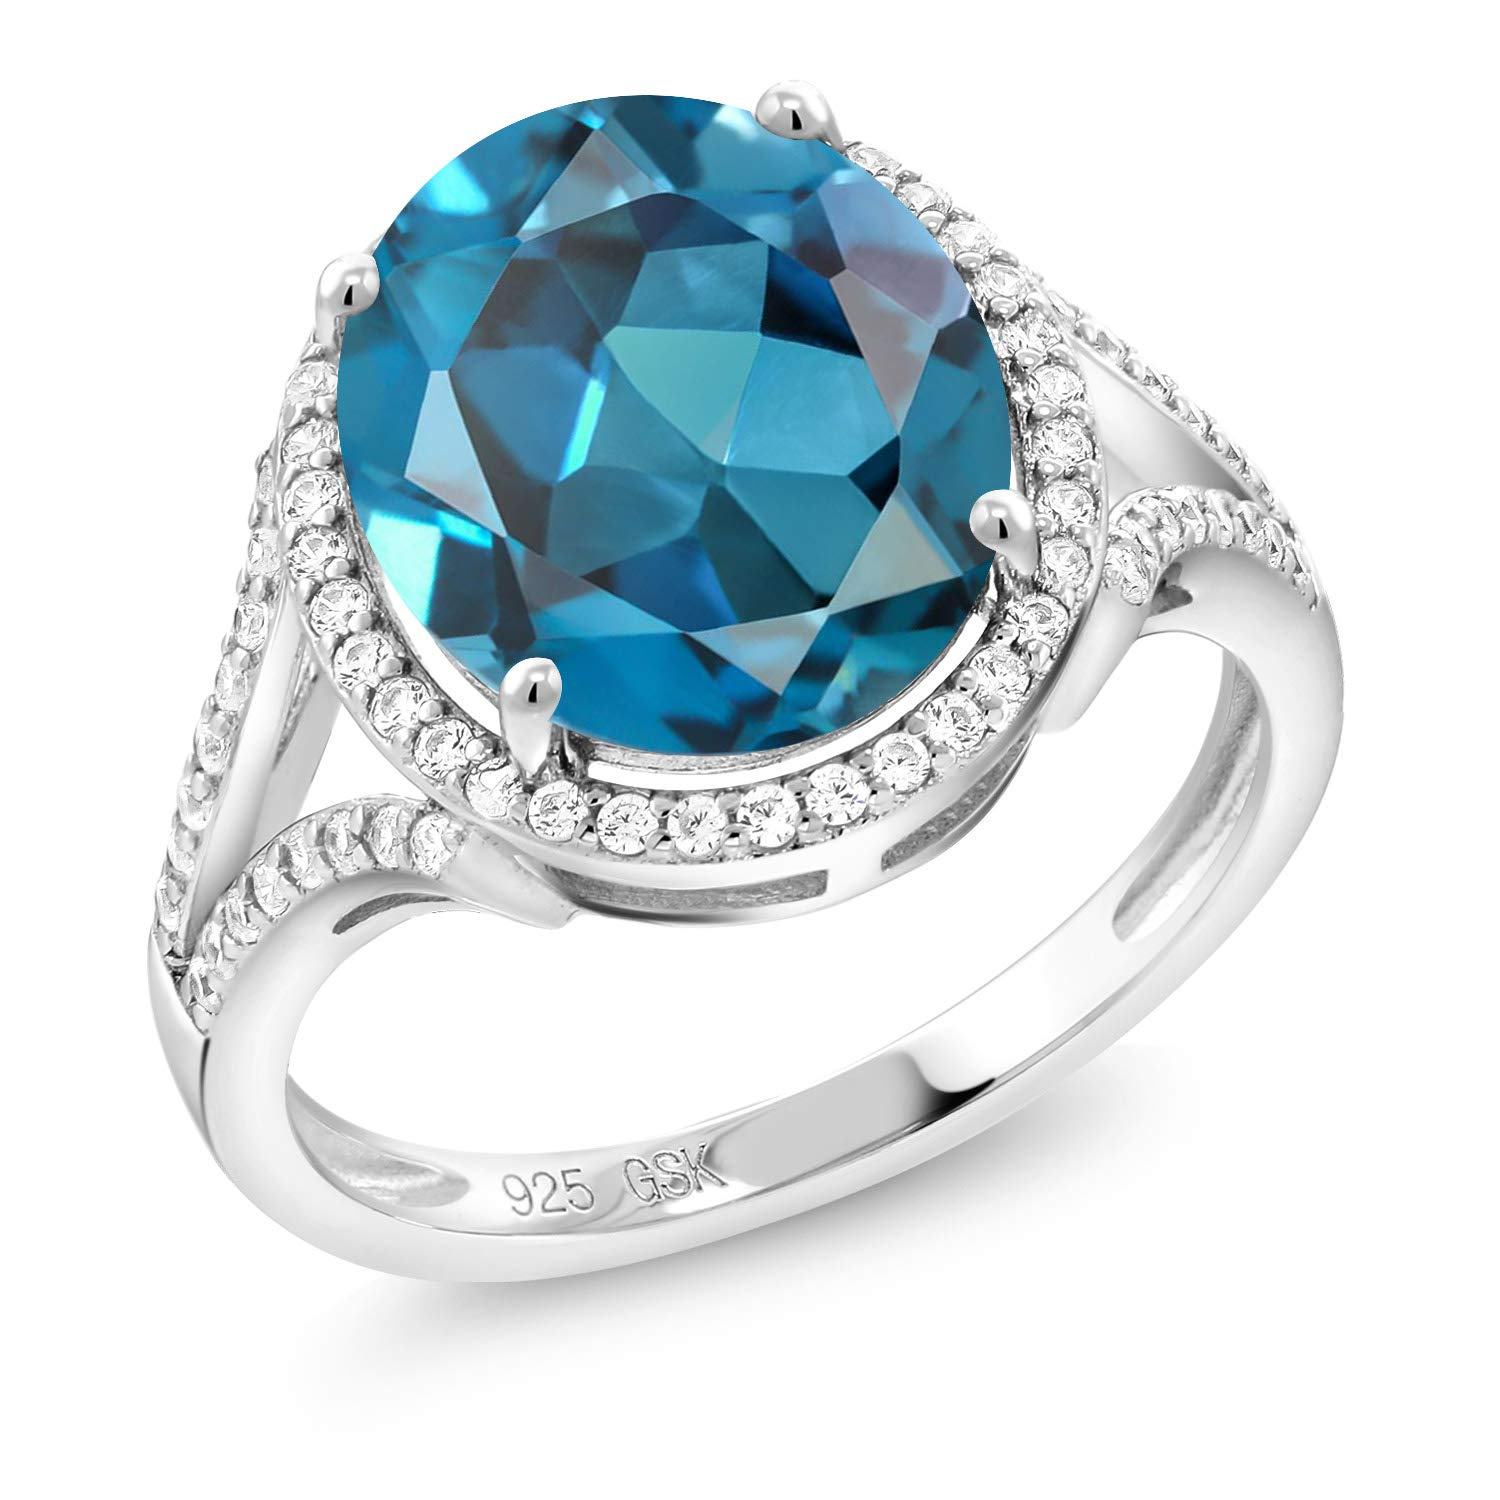 Gem Stone King London Blue Topaz 925 Sterling Silver Women's Ring (6.02 Ct Oval Gemstone Birthstone Available 5,6,7,8,9)